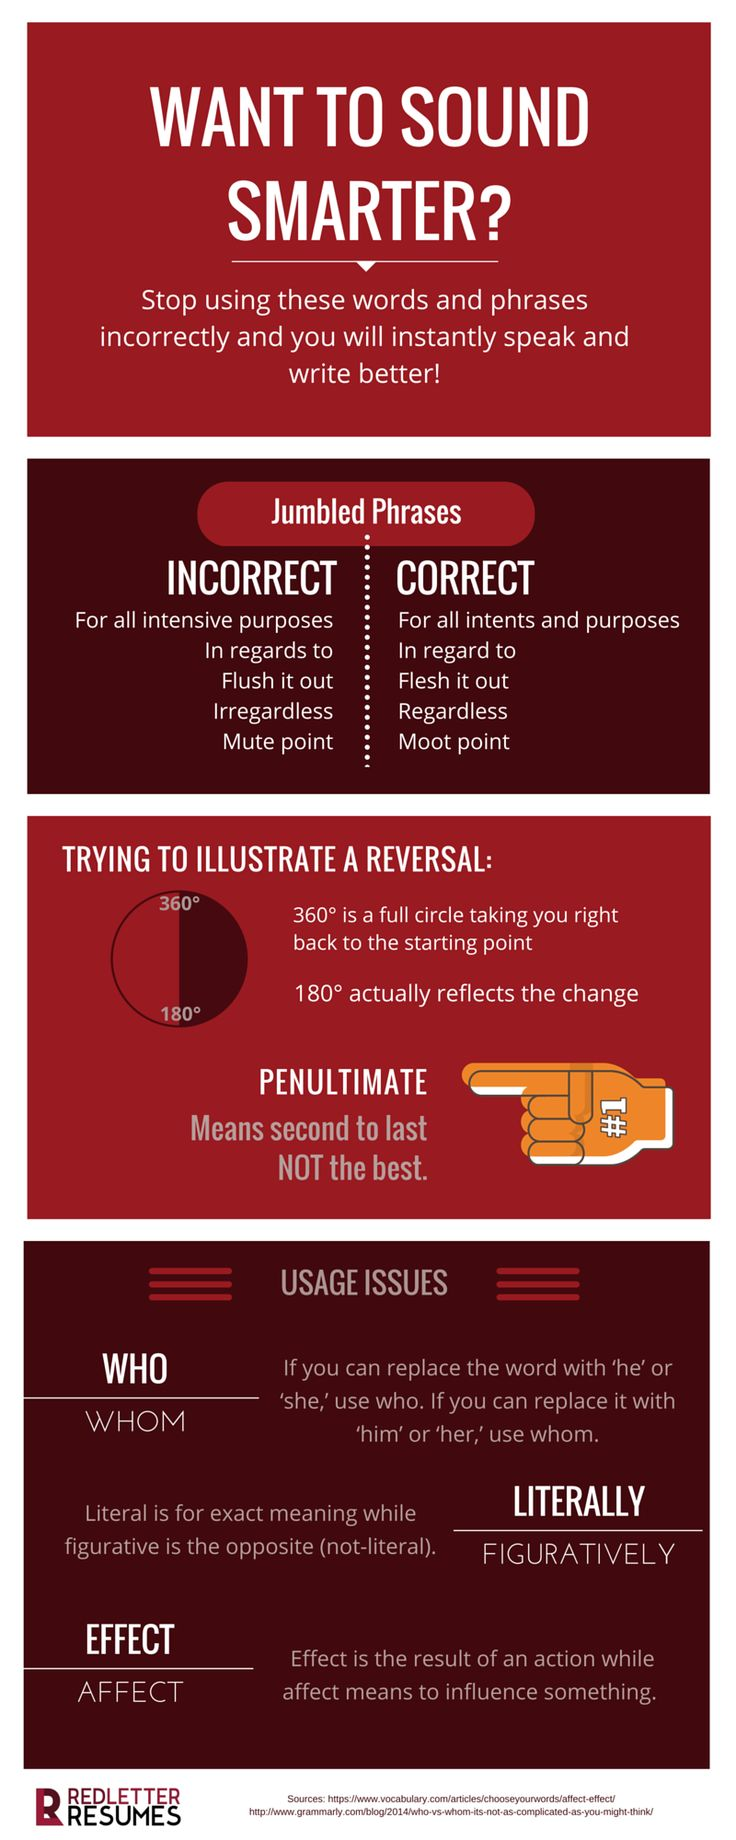 Want to Sound Smarter? Red Letter Resumes | Infographic @redletterresume www.redletterresumes.com